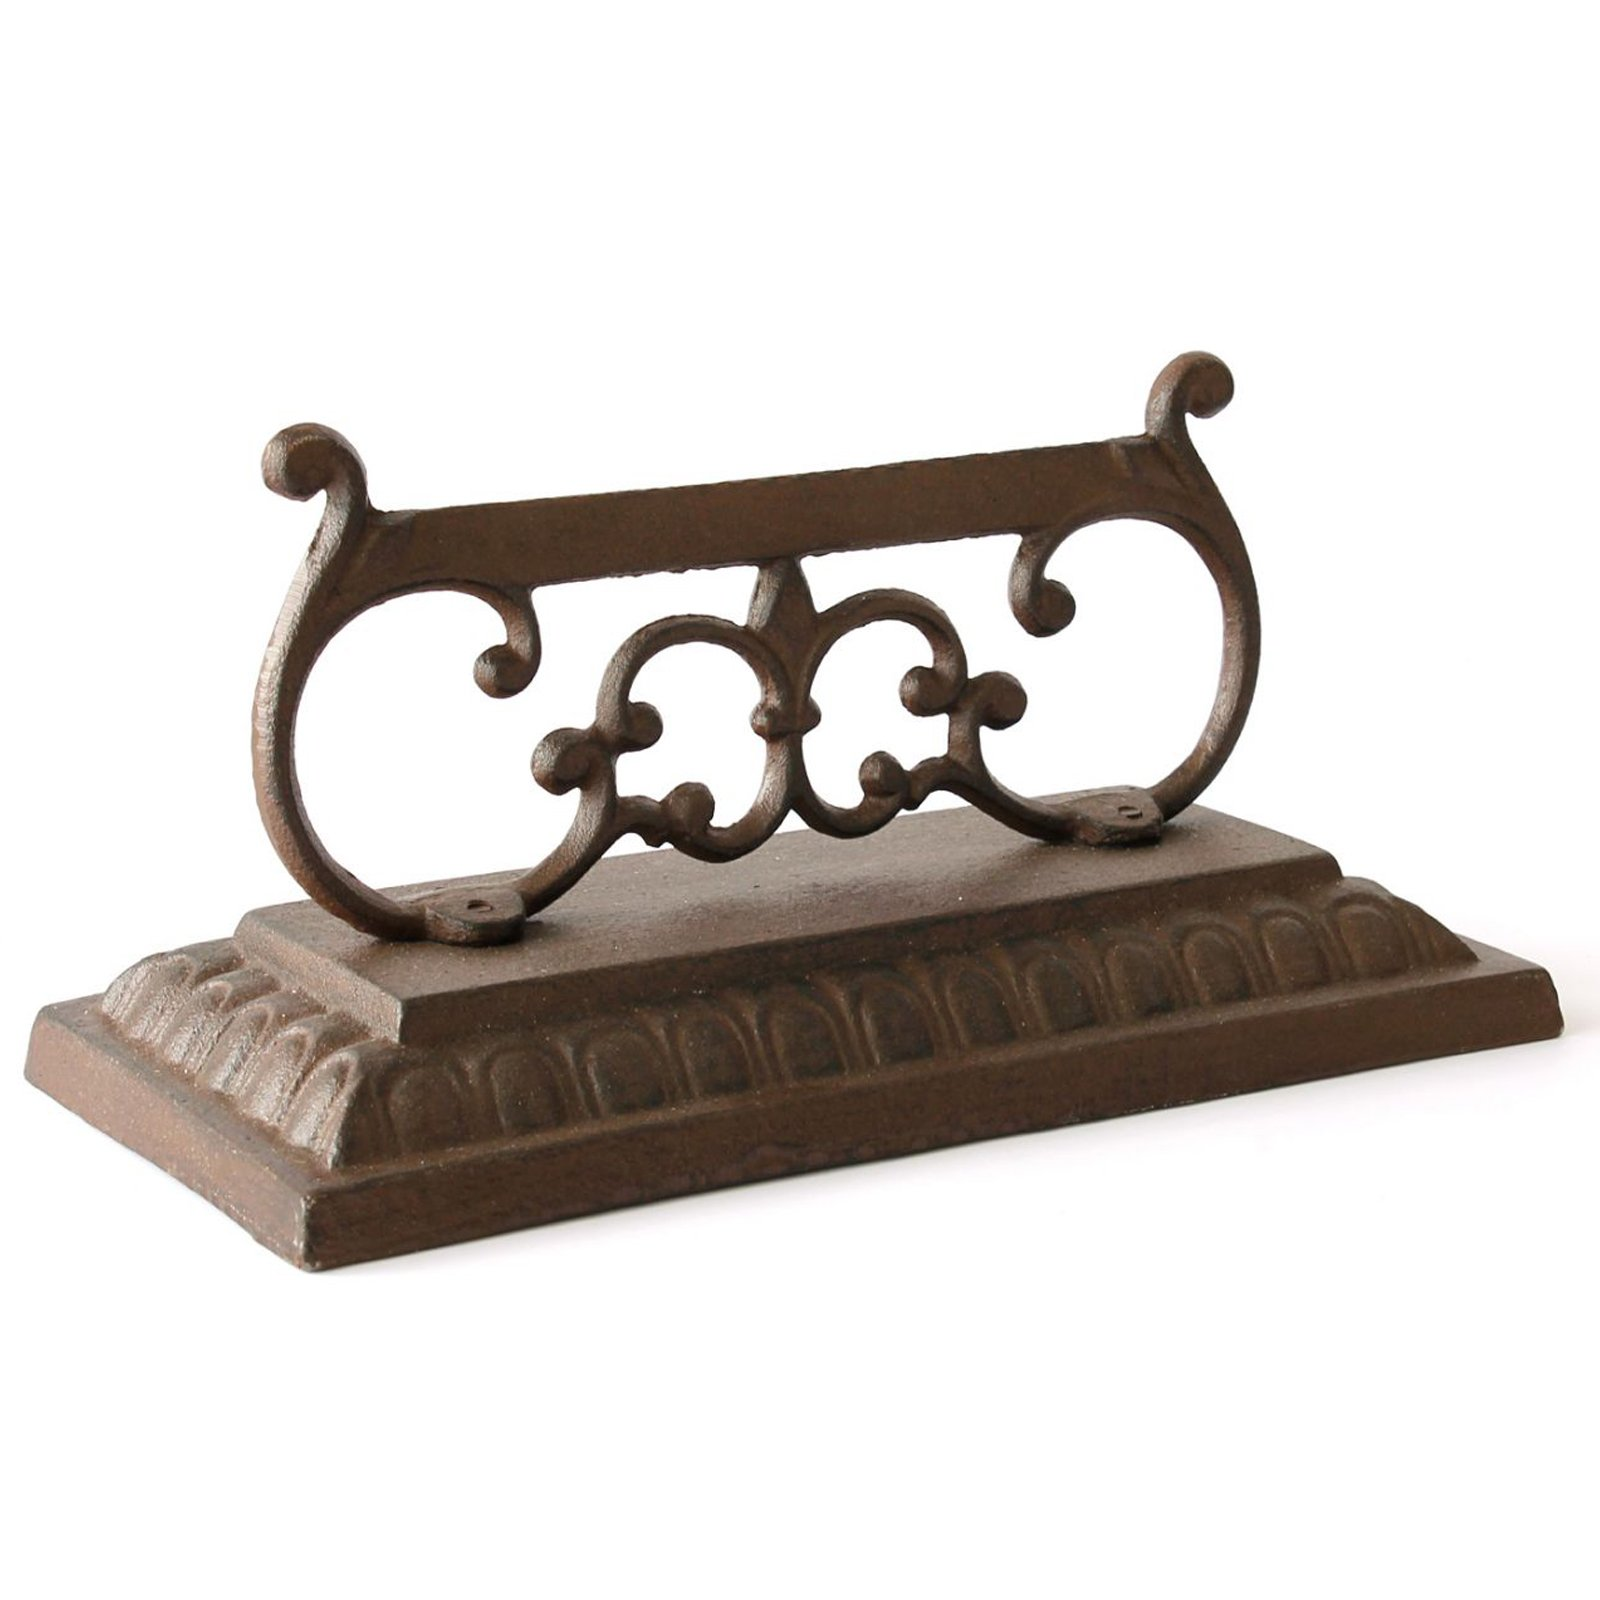 The Crabby Nook Mud Dirt Boot Scraper Ornate Cast Iron Outdoor Garden Decor